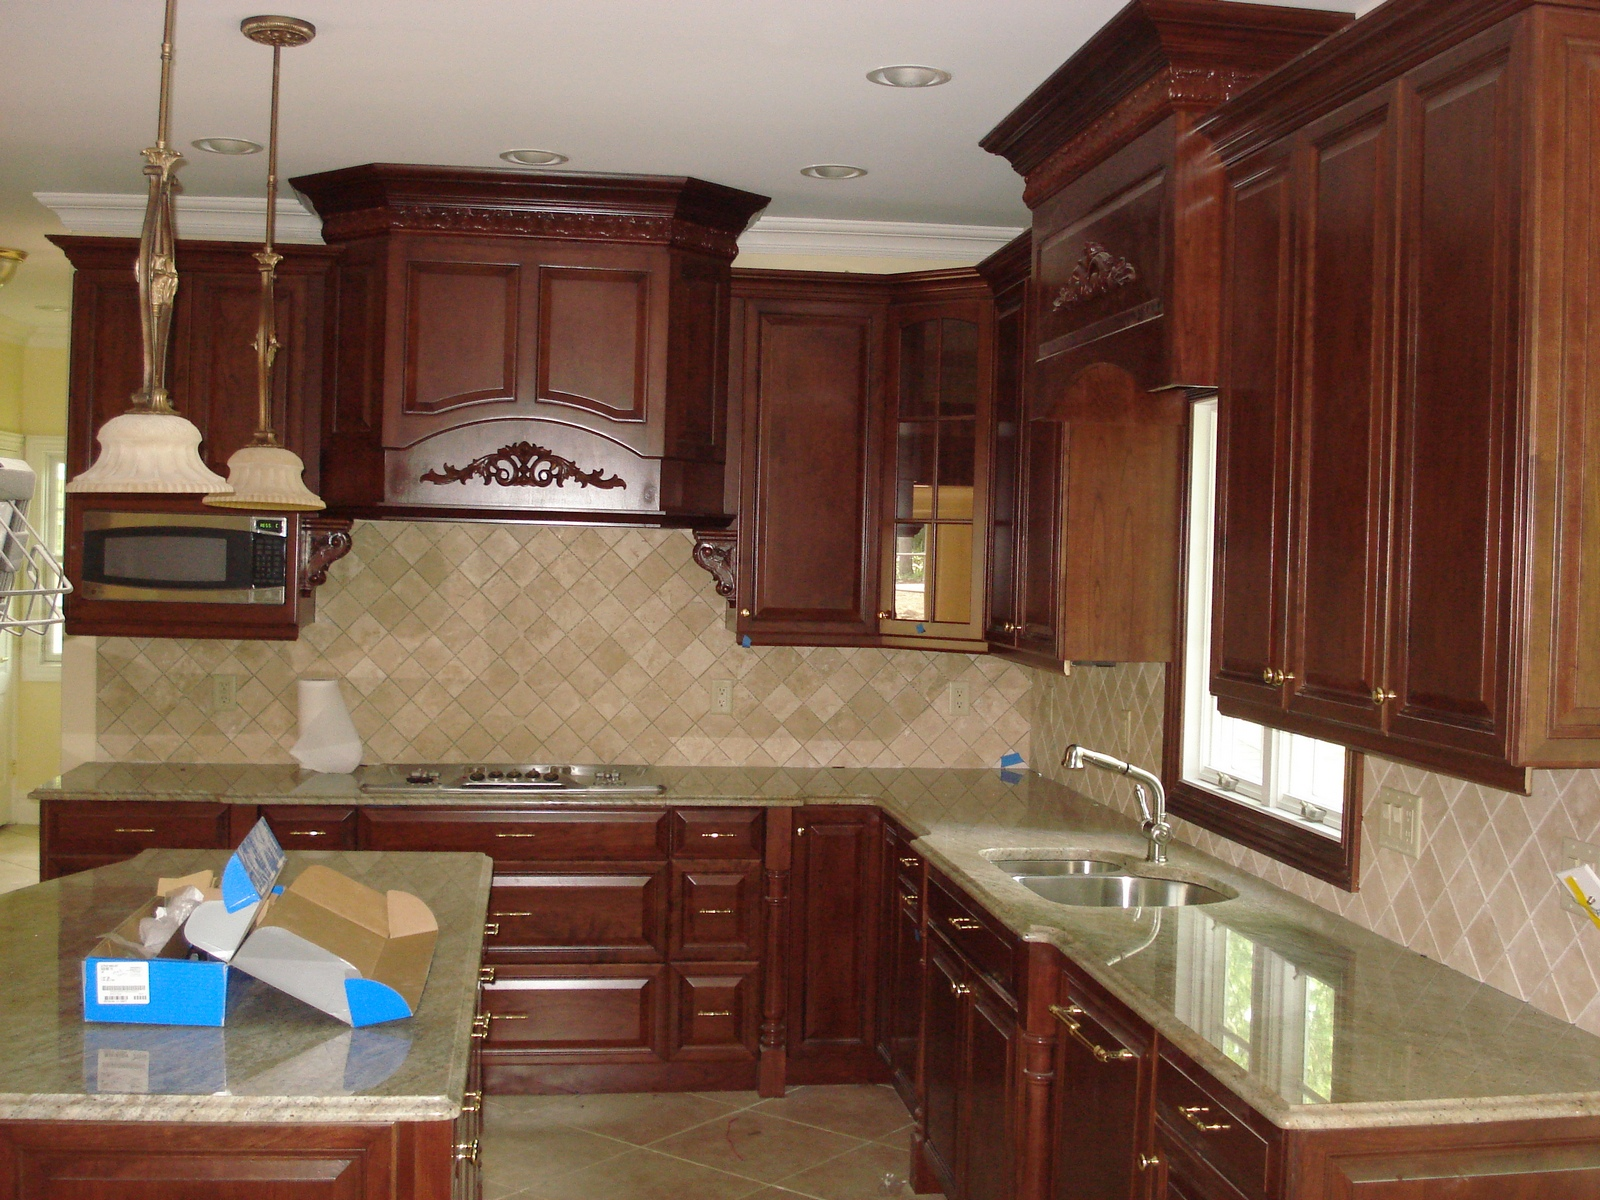 kitchen cabinets kitchen cabinets nj kitchen cabintes by Crown Molding NJ 13 kitchen cabinets KC6